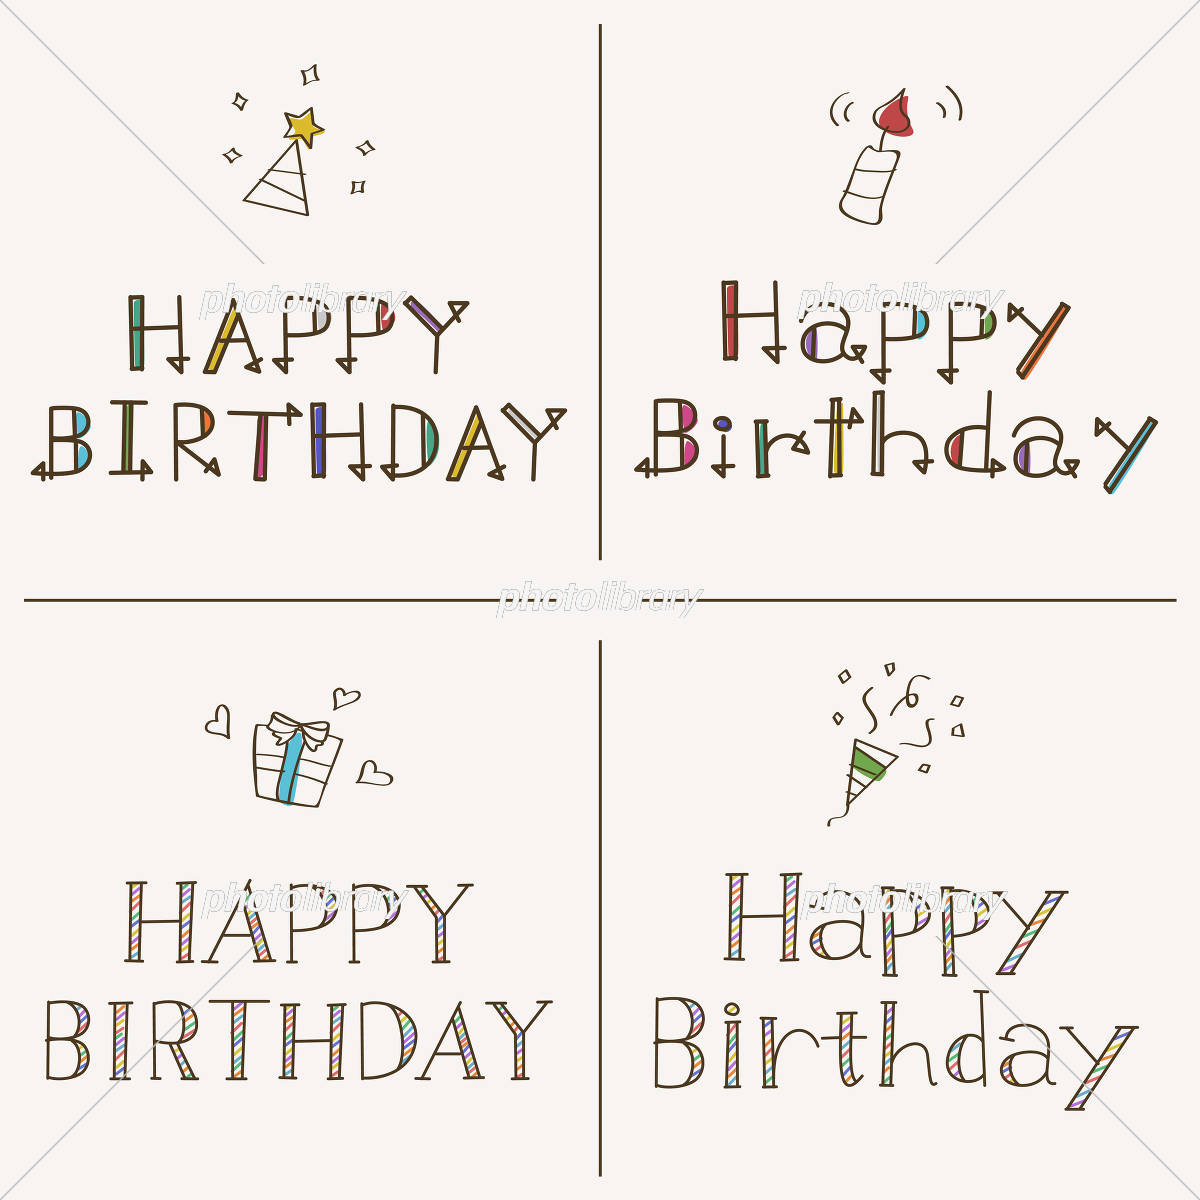 Happy Birthday Handwritten font イラスト素材